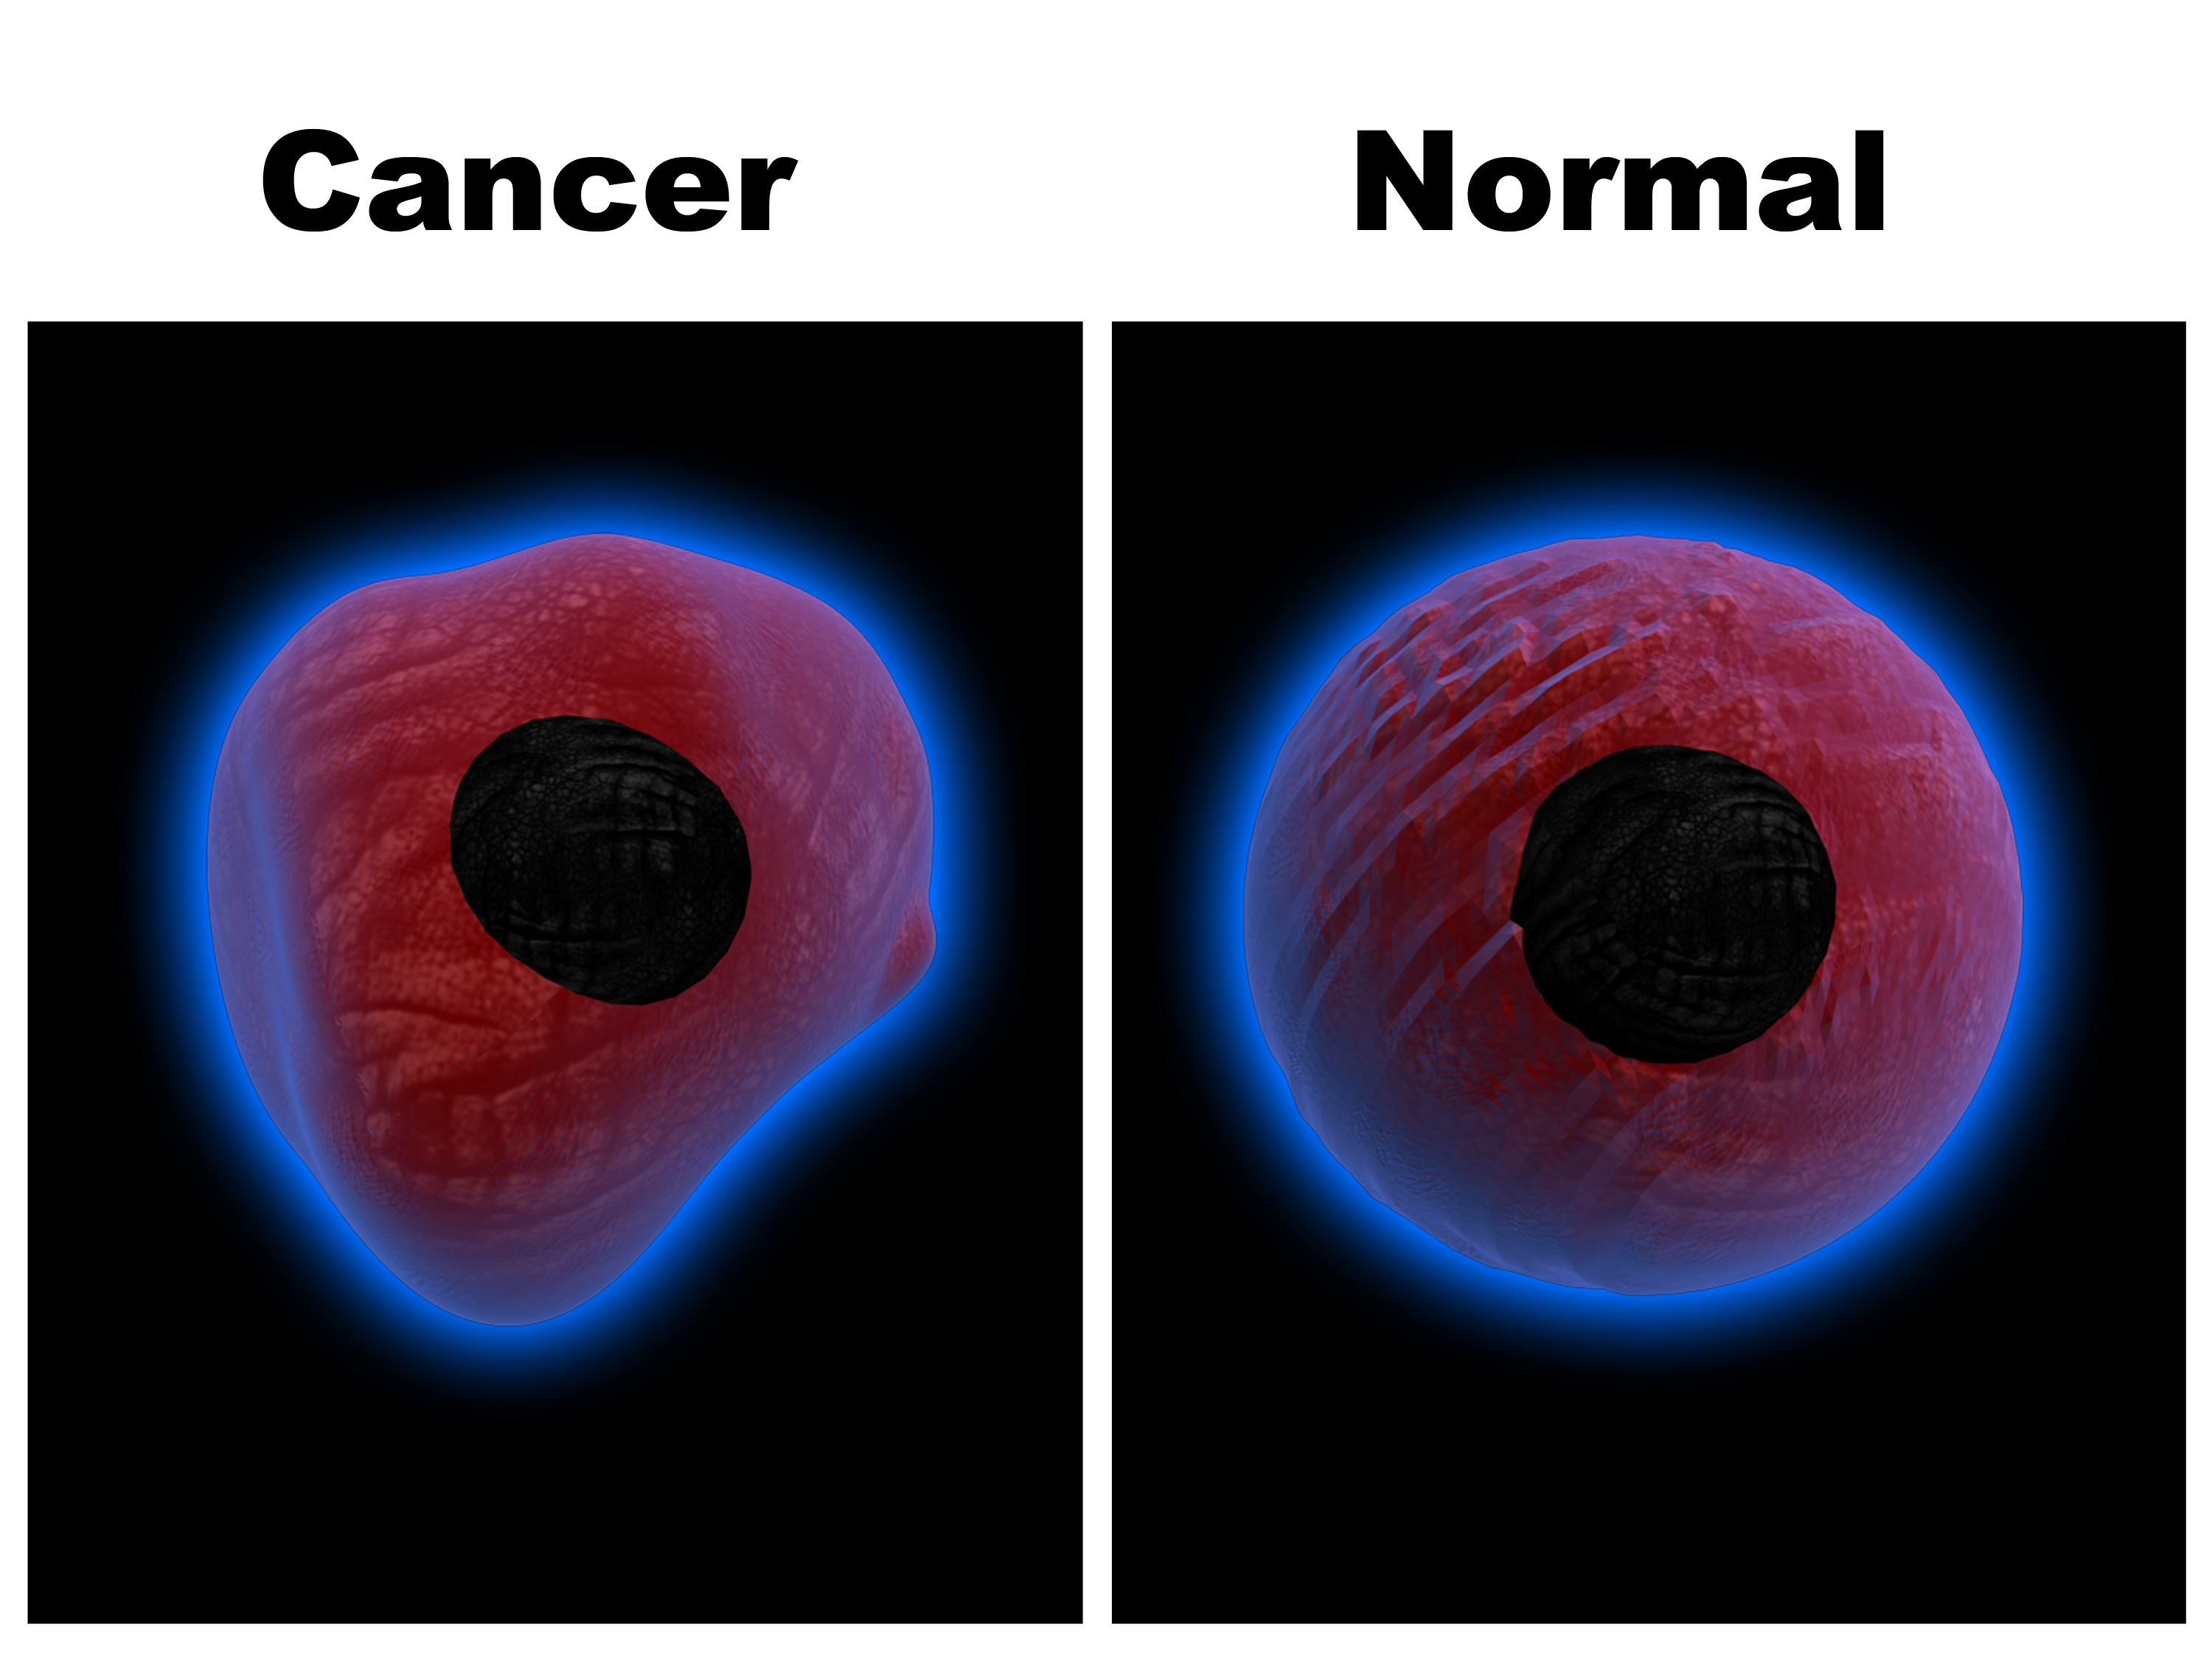 Cancer and Normal Cell